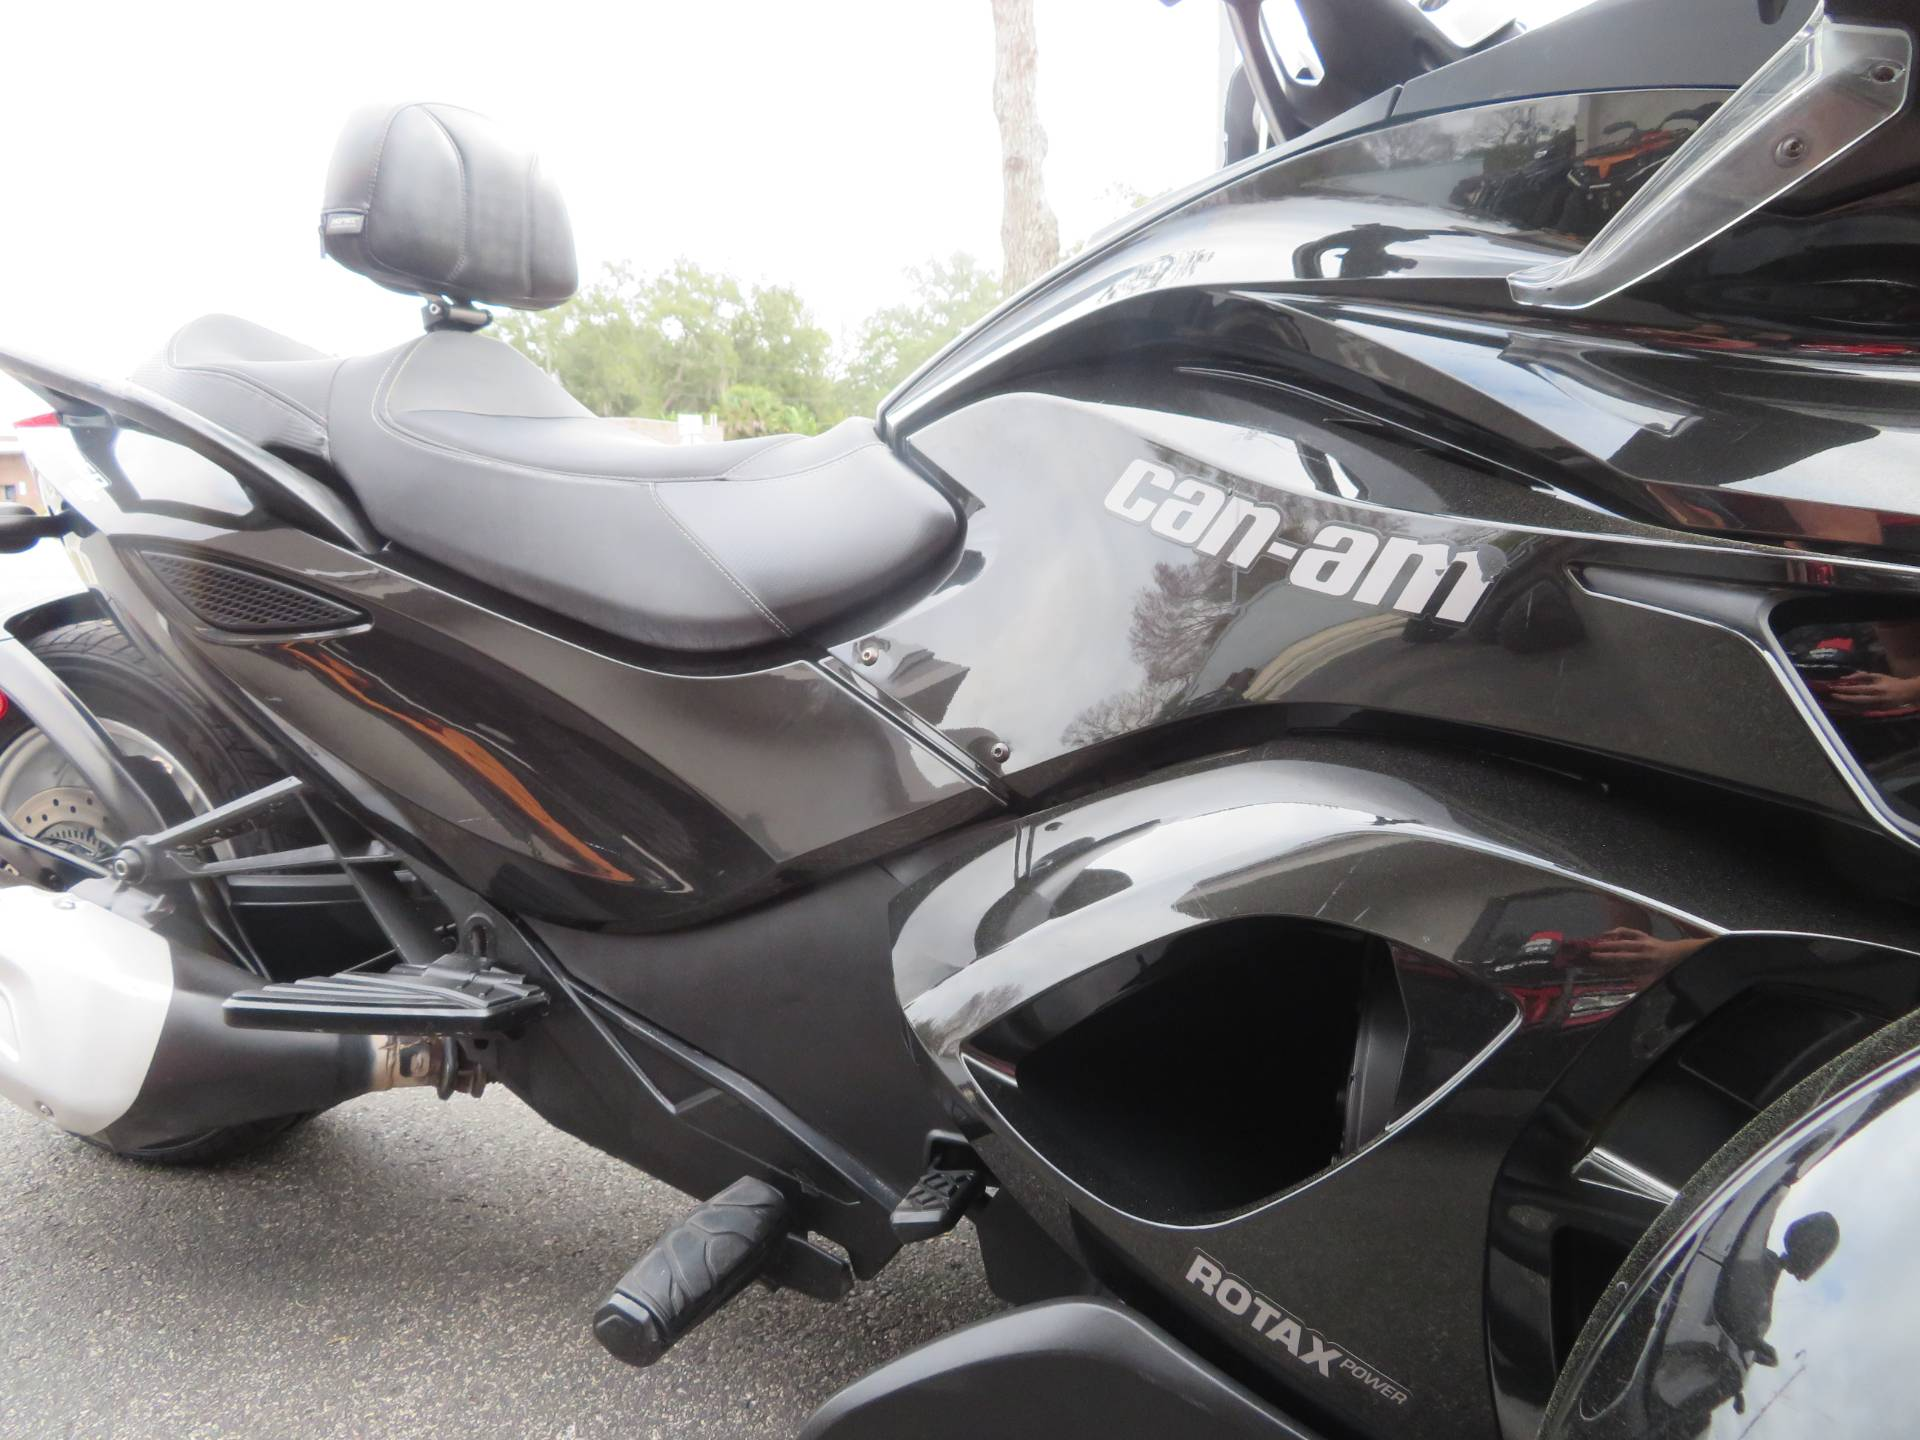 2015 Can-Am Spyder® ST-S SM5 in Sanford, Florida - Photo 13